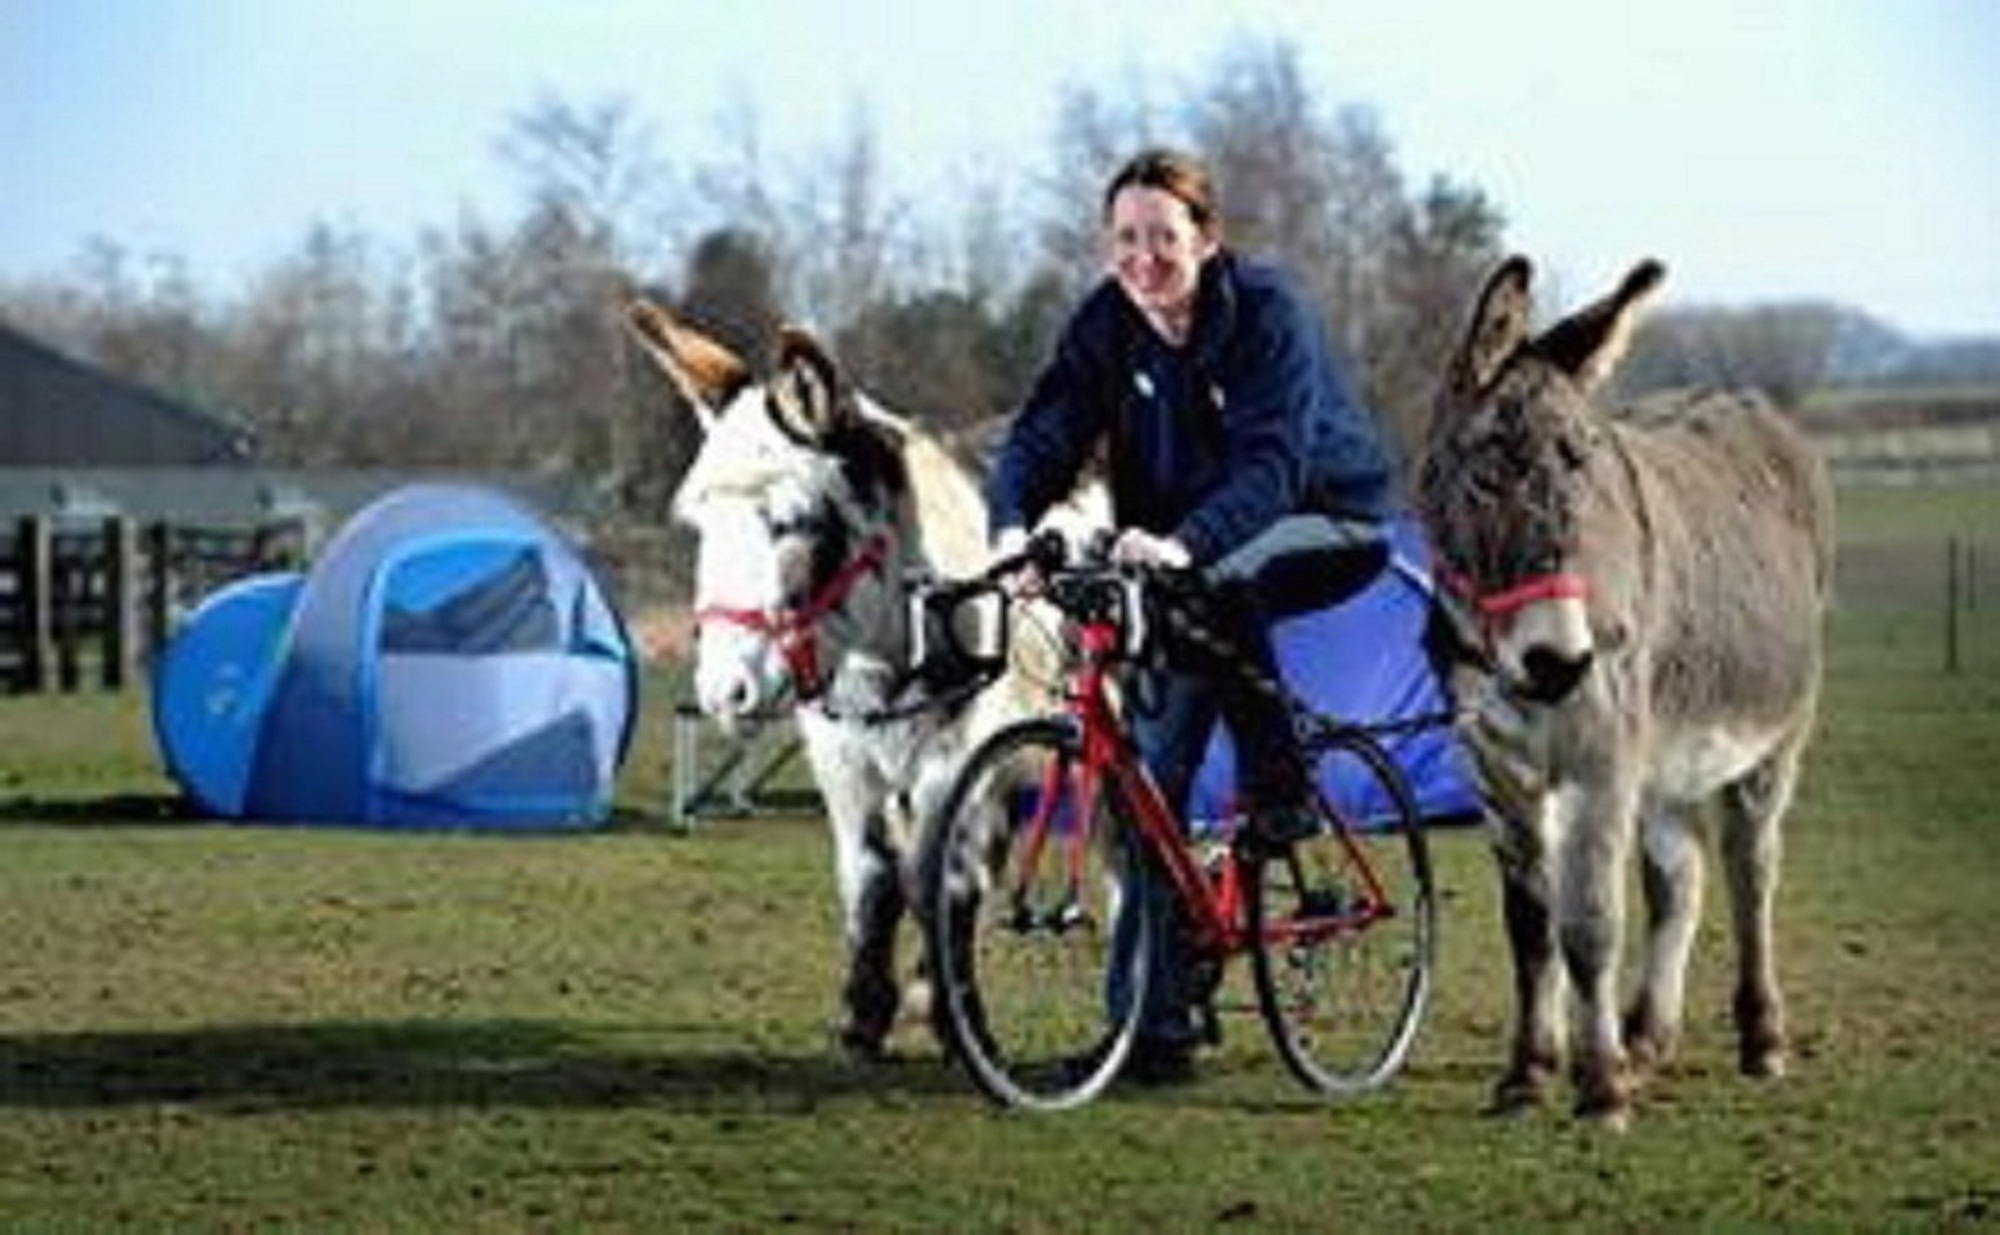 Centre manager at The Donkey Sanctuary Cathryn Williams gets on her bike ready for the Tour de France